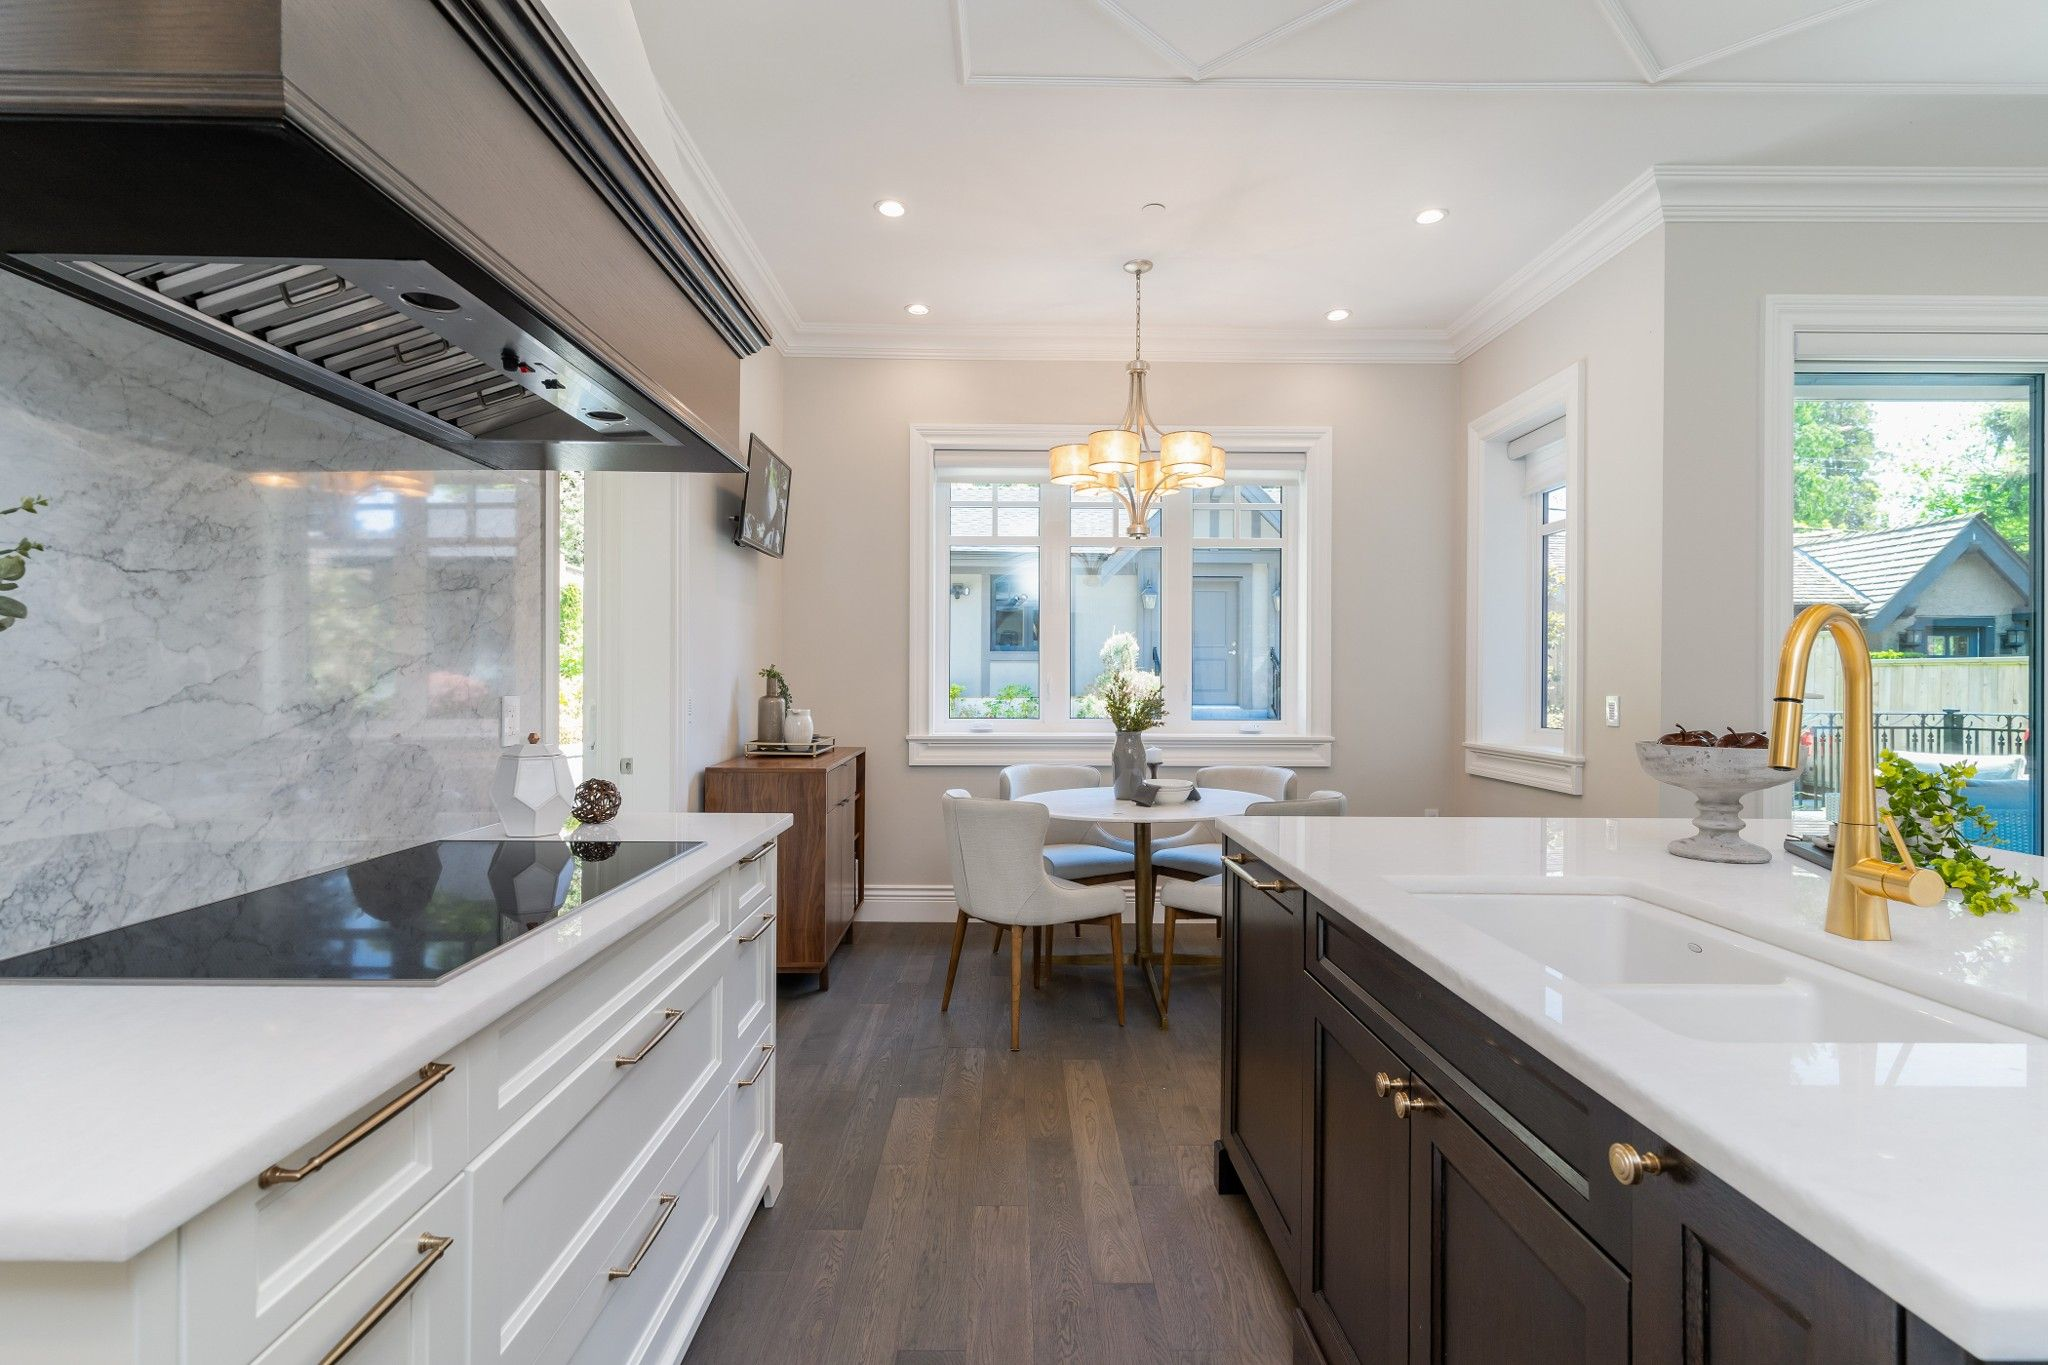 Photo 61: Photos: 5756 ALMA STREET in VANCOUVER: Southlands House for sale (Vancouver West)  : MLS®# R2588229